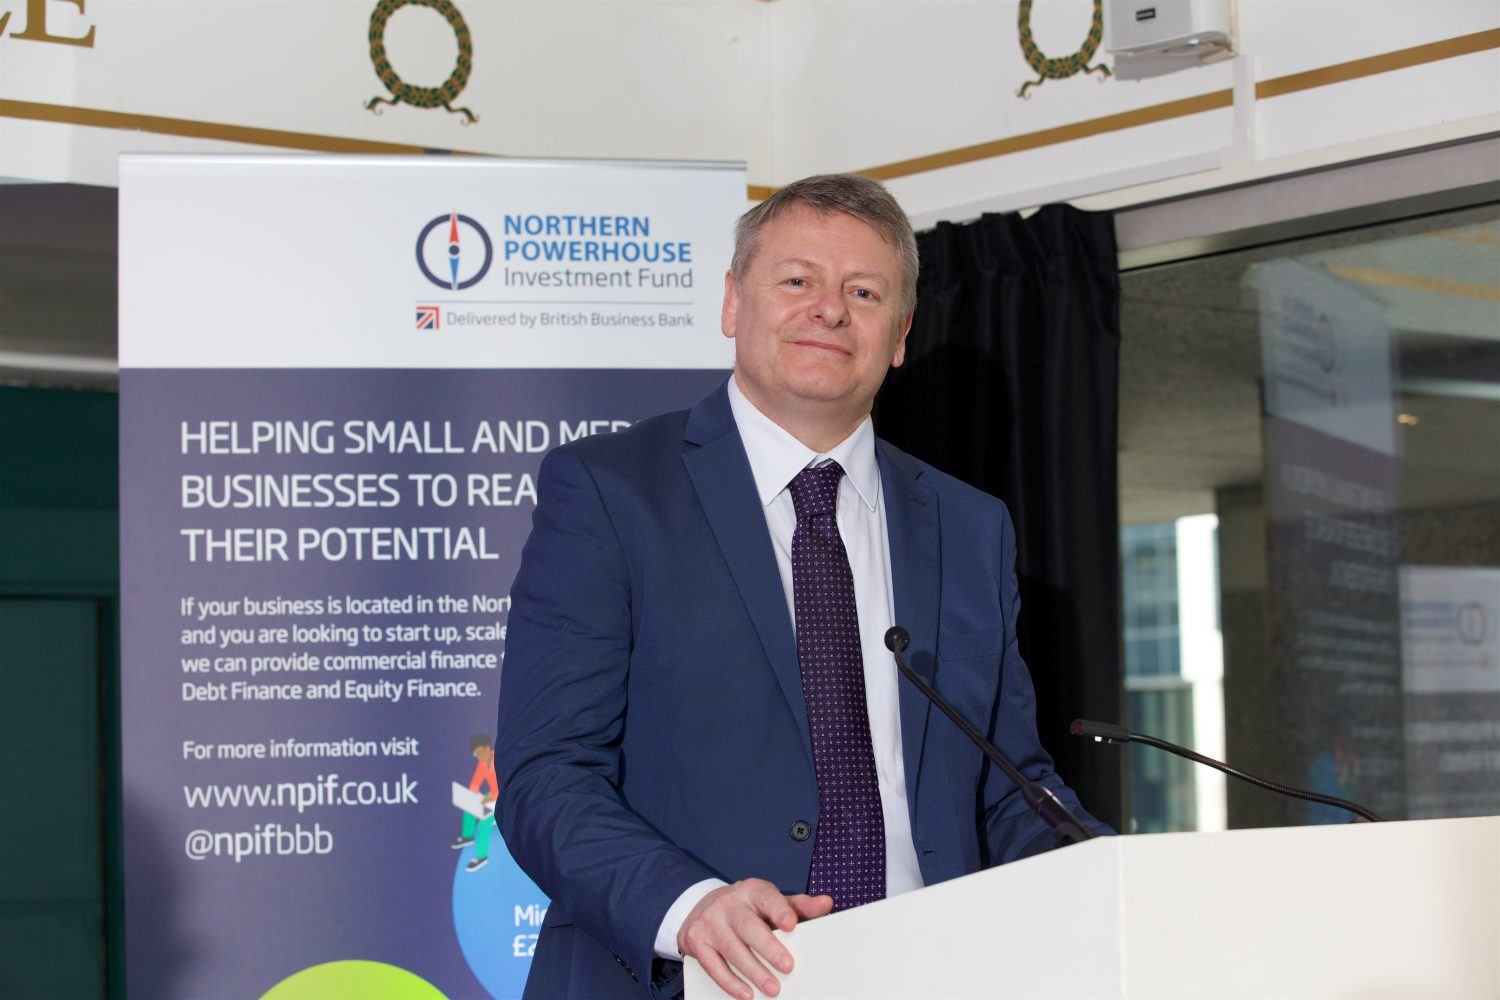 Grant Peggie, director at British Business Bank, at the launch of the Northern Powerhouse